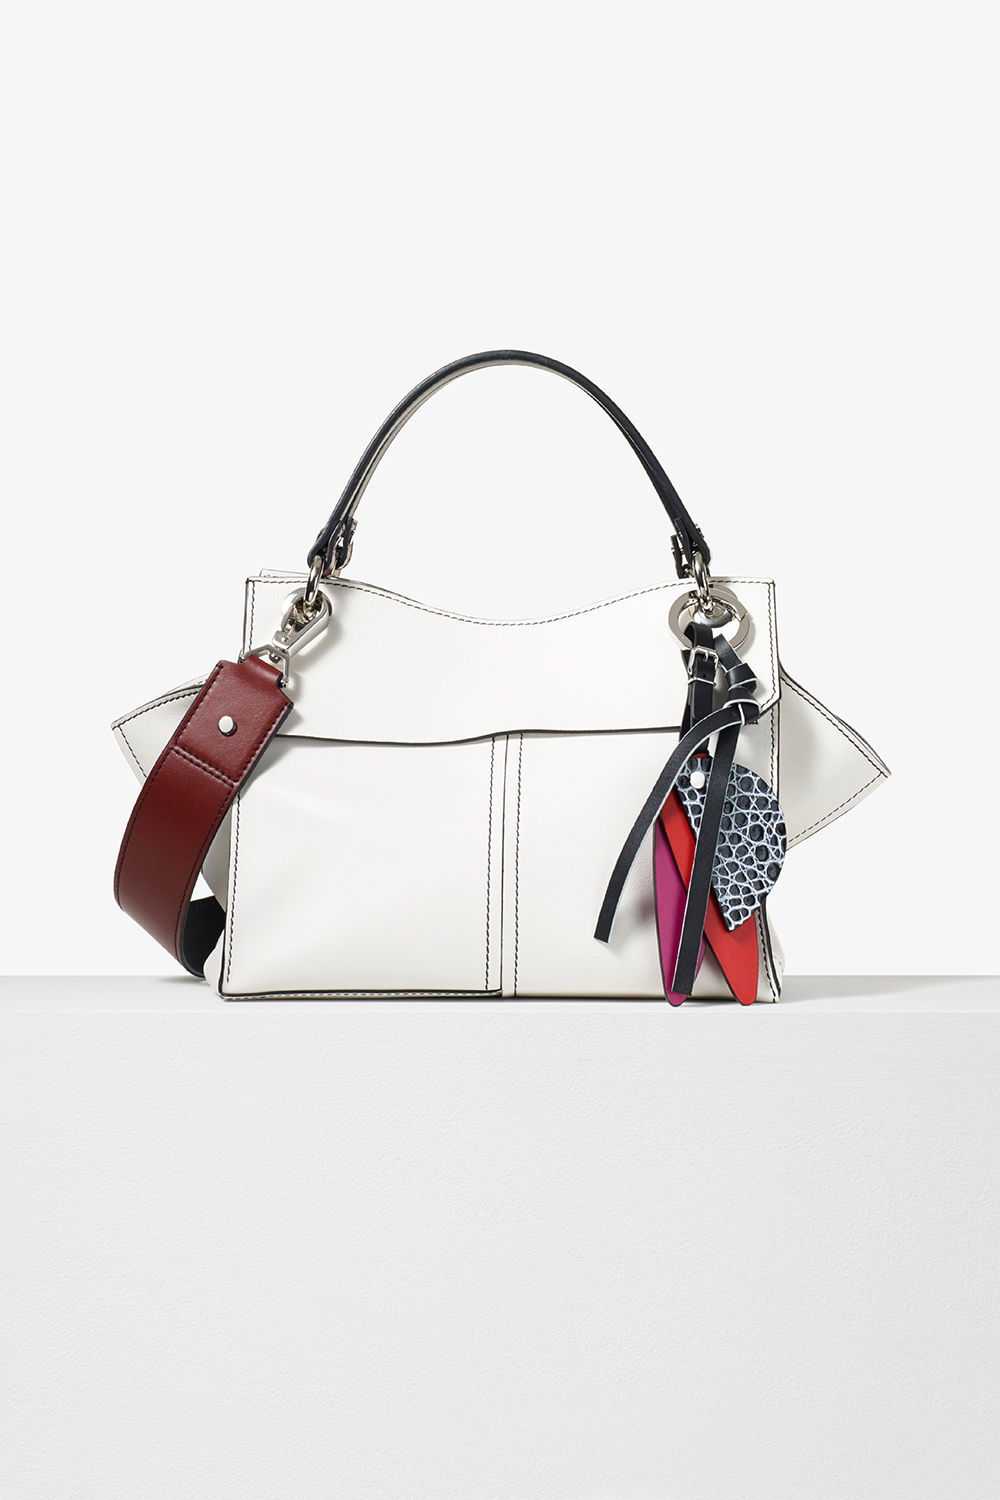 proenza schouler pre fall 2017 optic white soft smooth leather curl handbag